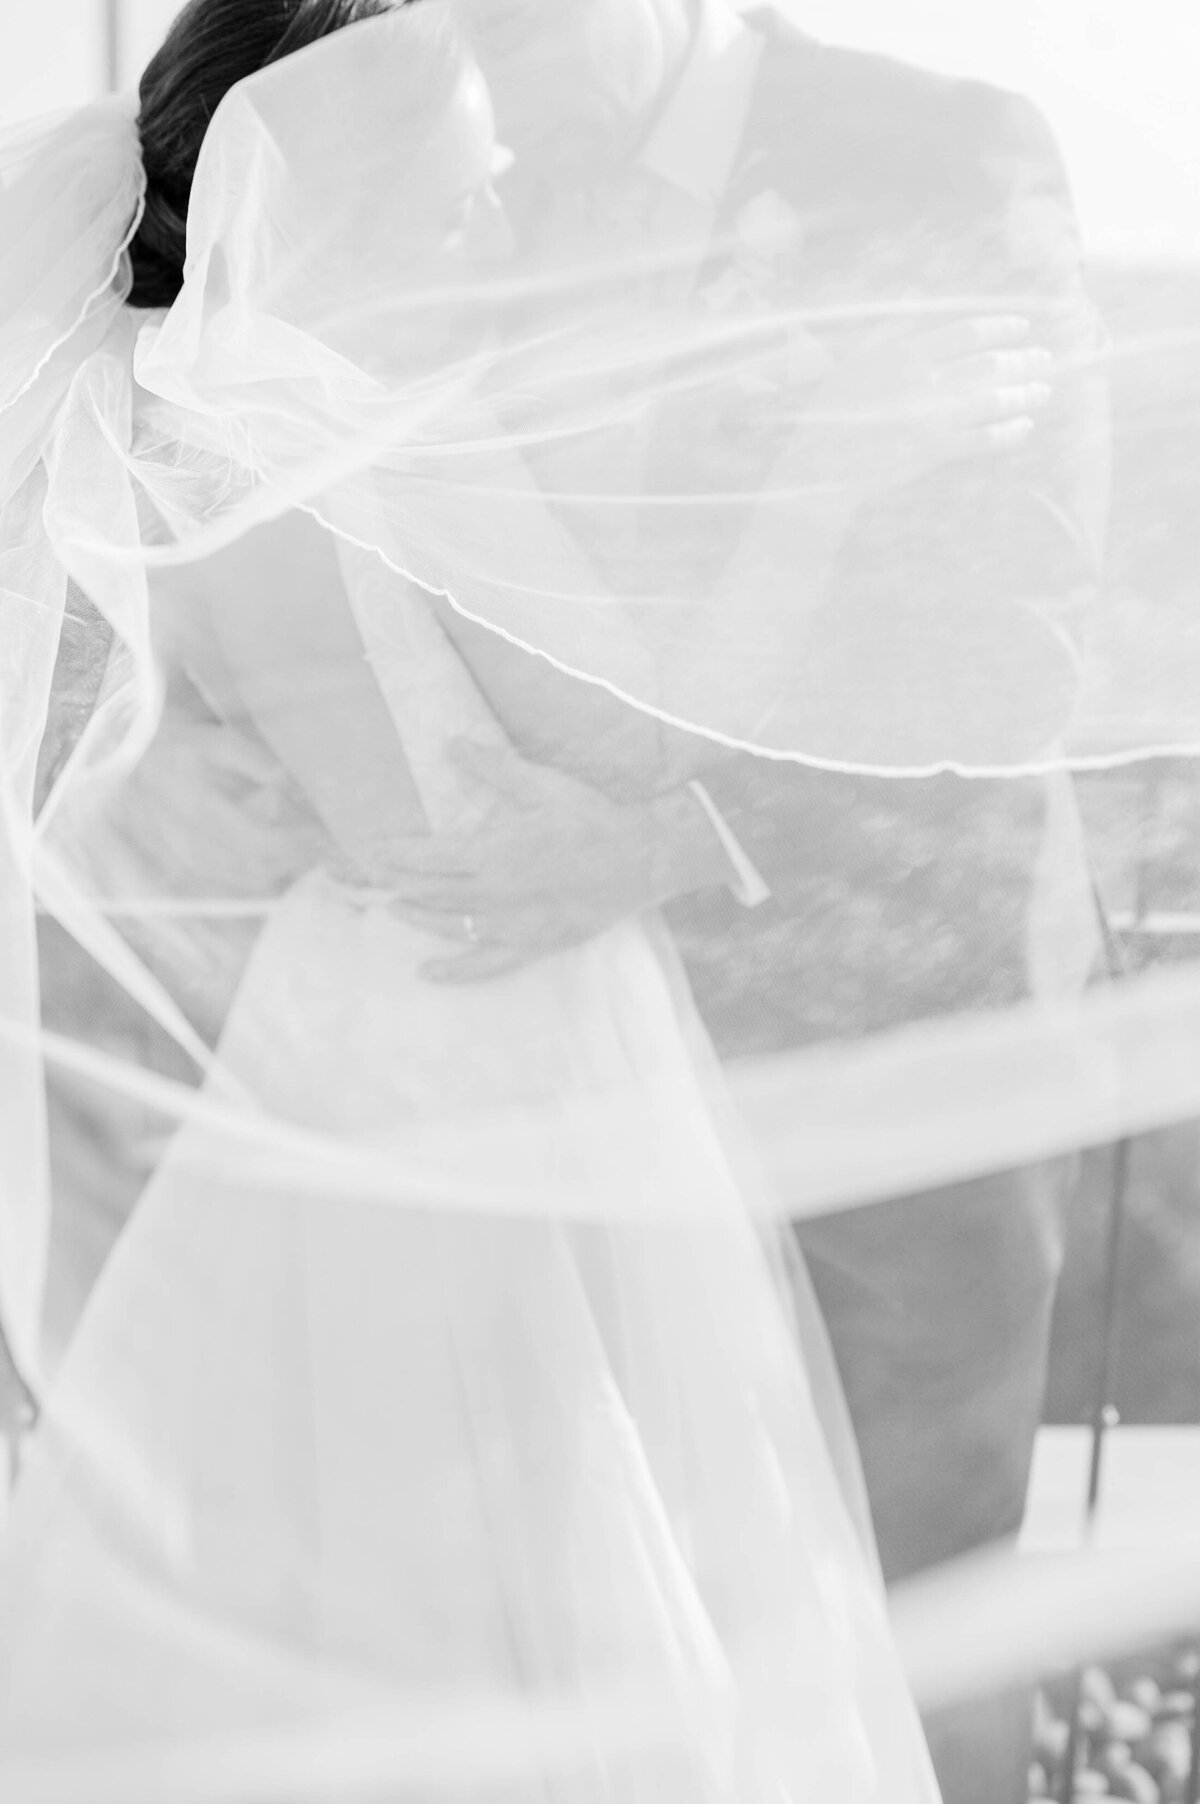 Jennifer Bosak Photography - DC Area Wedding Photography - DC, Virginia, Maryland - Jeanna + Michael - Decatur House Wedding - 21